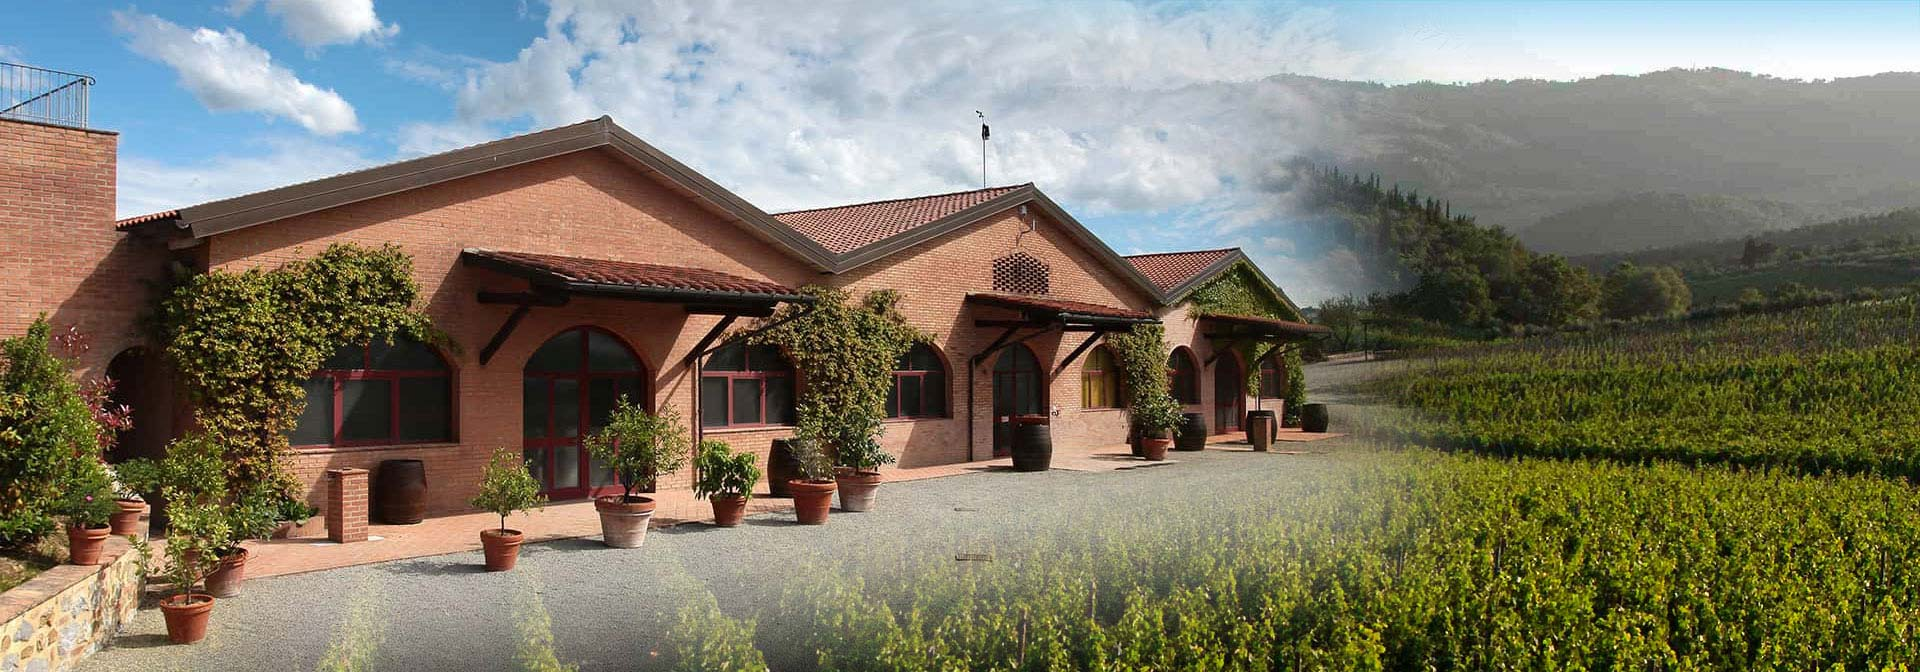 Farmhouse San Gimignano swimming pool restaurant wellness area Siena Tuscany